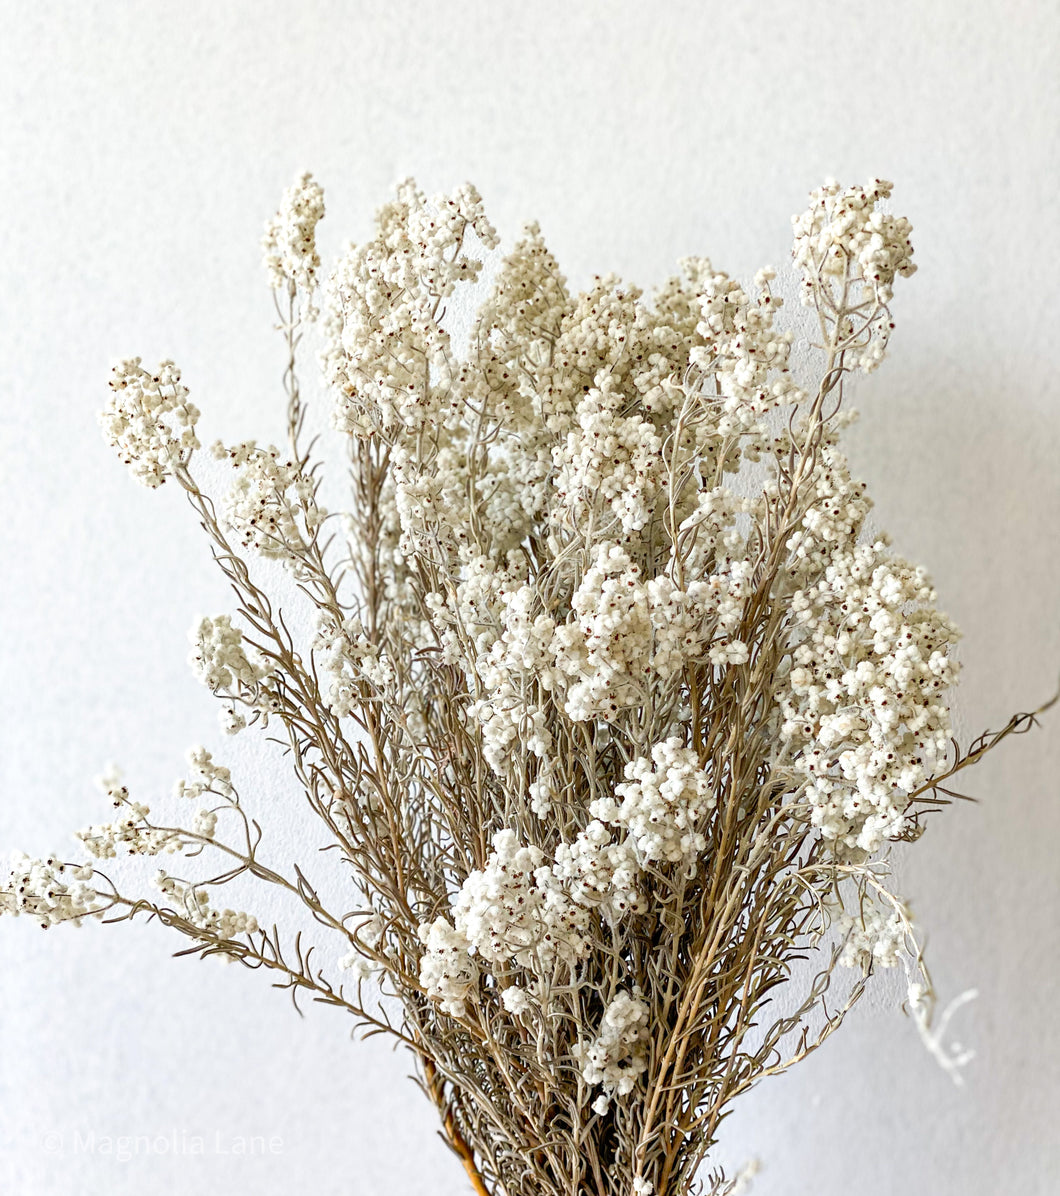 Australian Preserved Lamb's Tails - Dried Flowers - Magnolia Lane